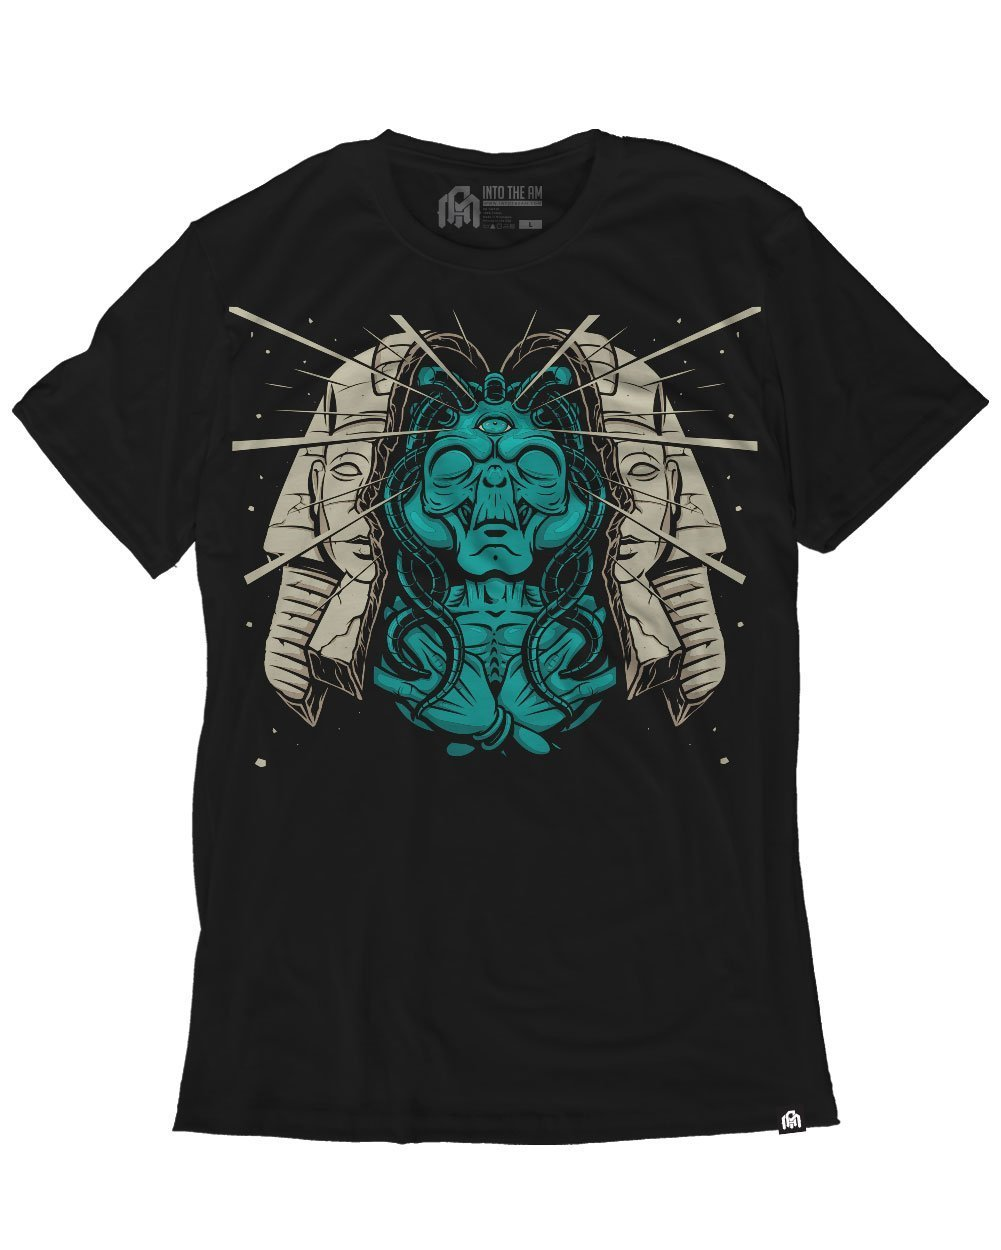 INTO THE AM Alien Sphinx Men's Graphic Tee Shirt (Small)